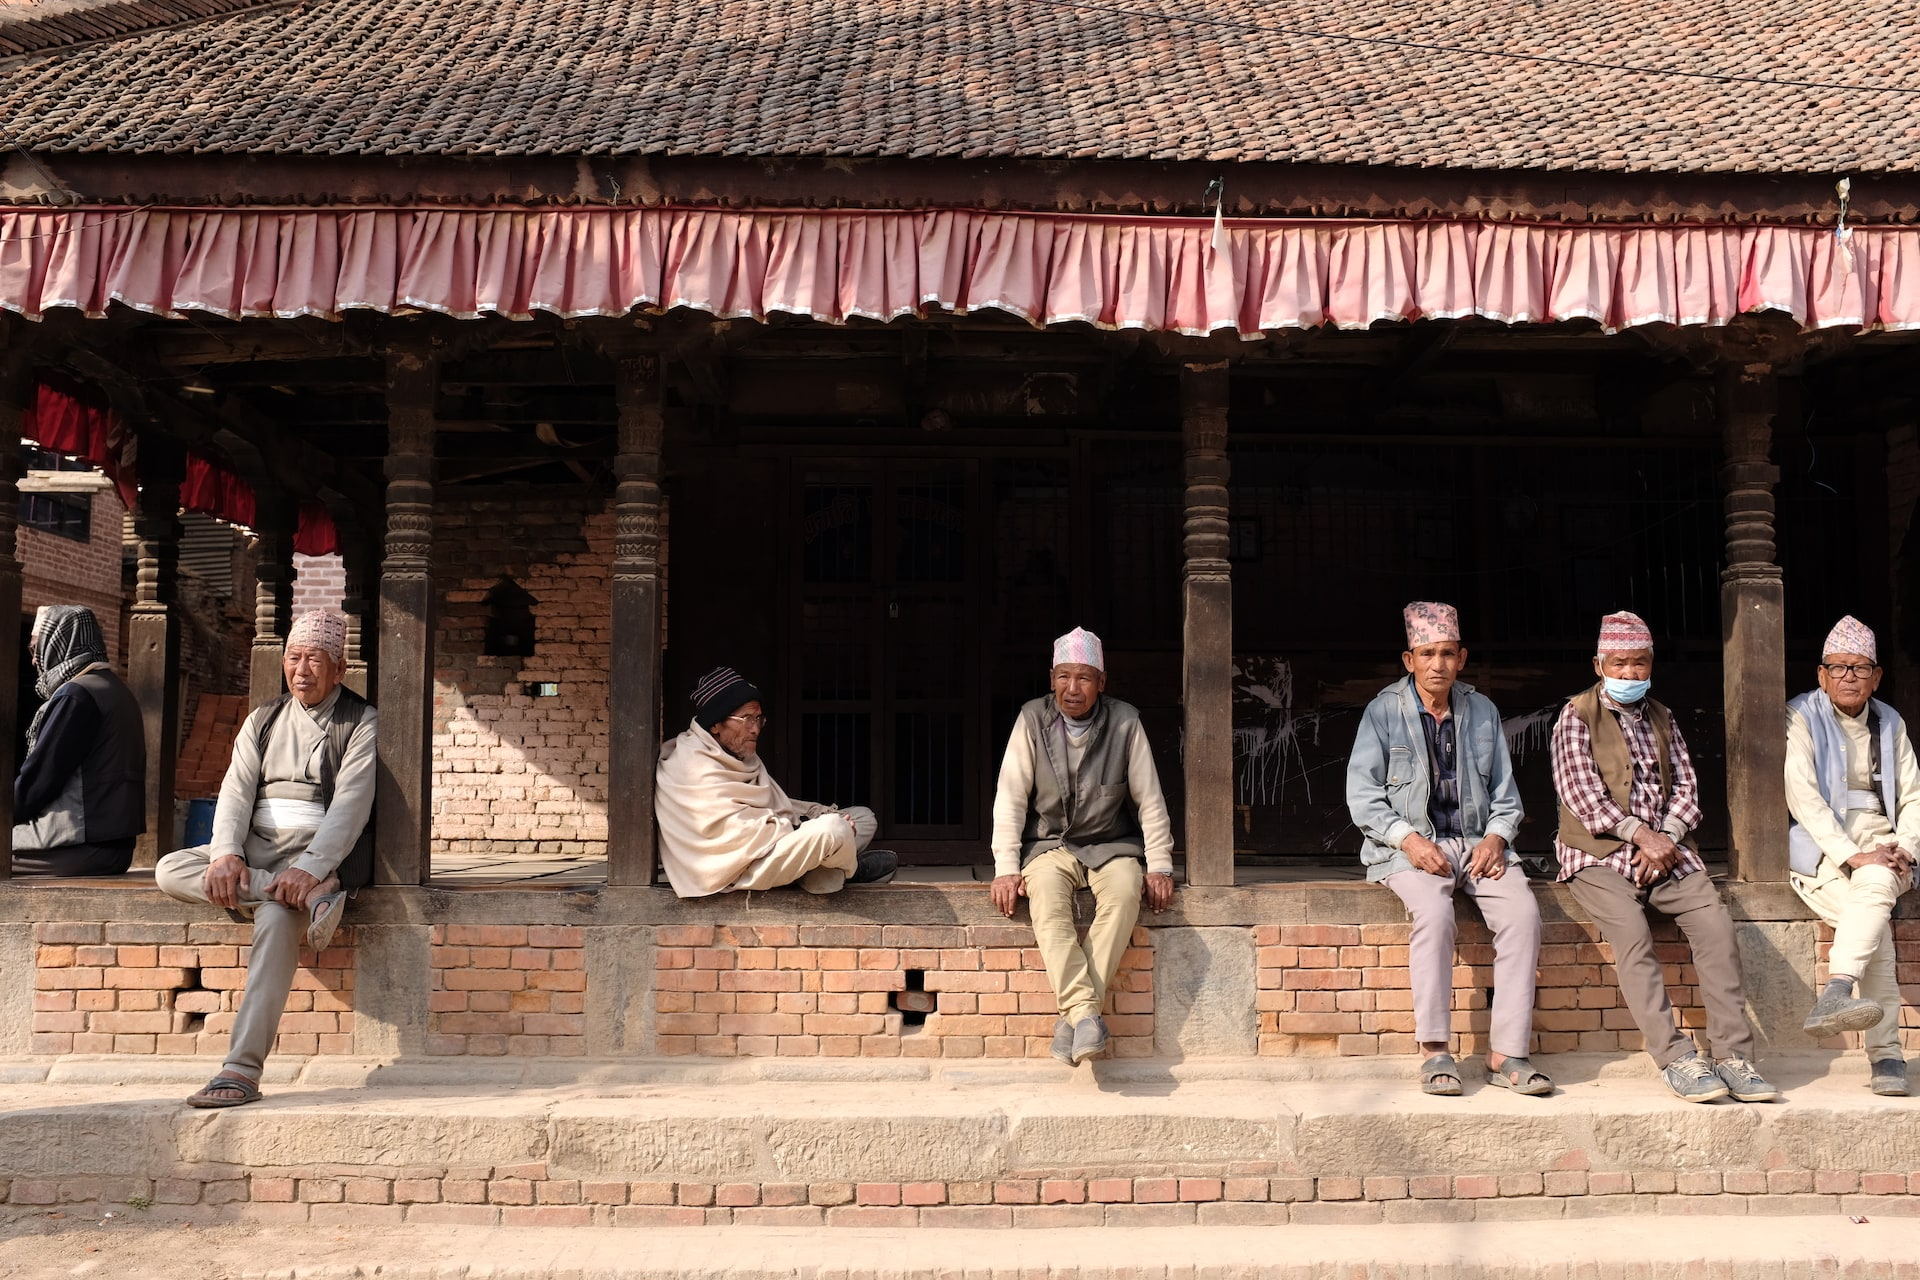 A photo series showcasing the beauty of Bhaktapur, Nepal